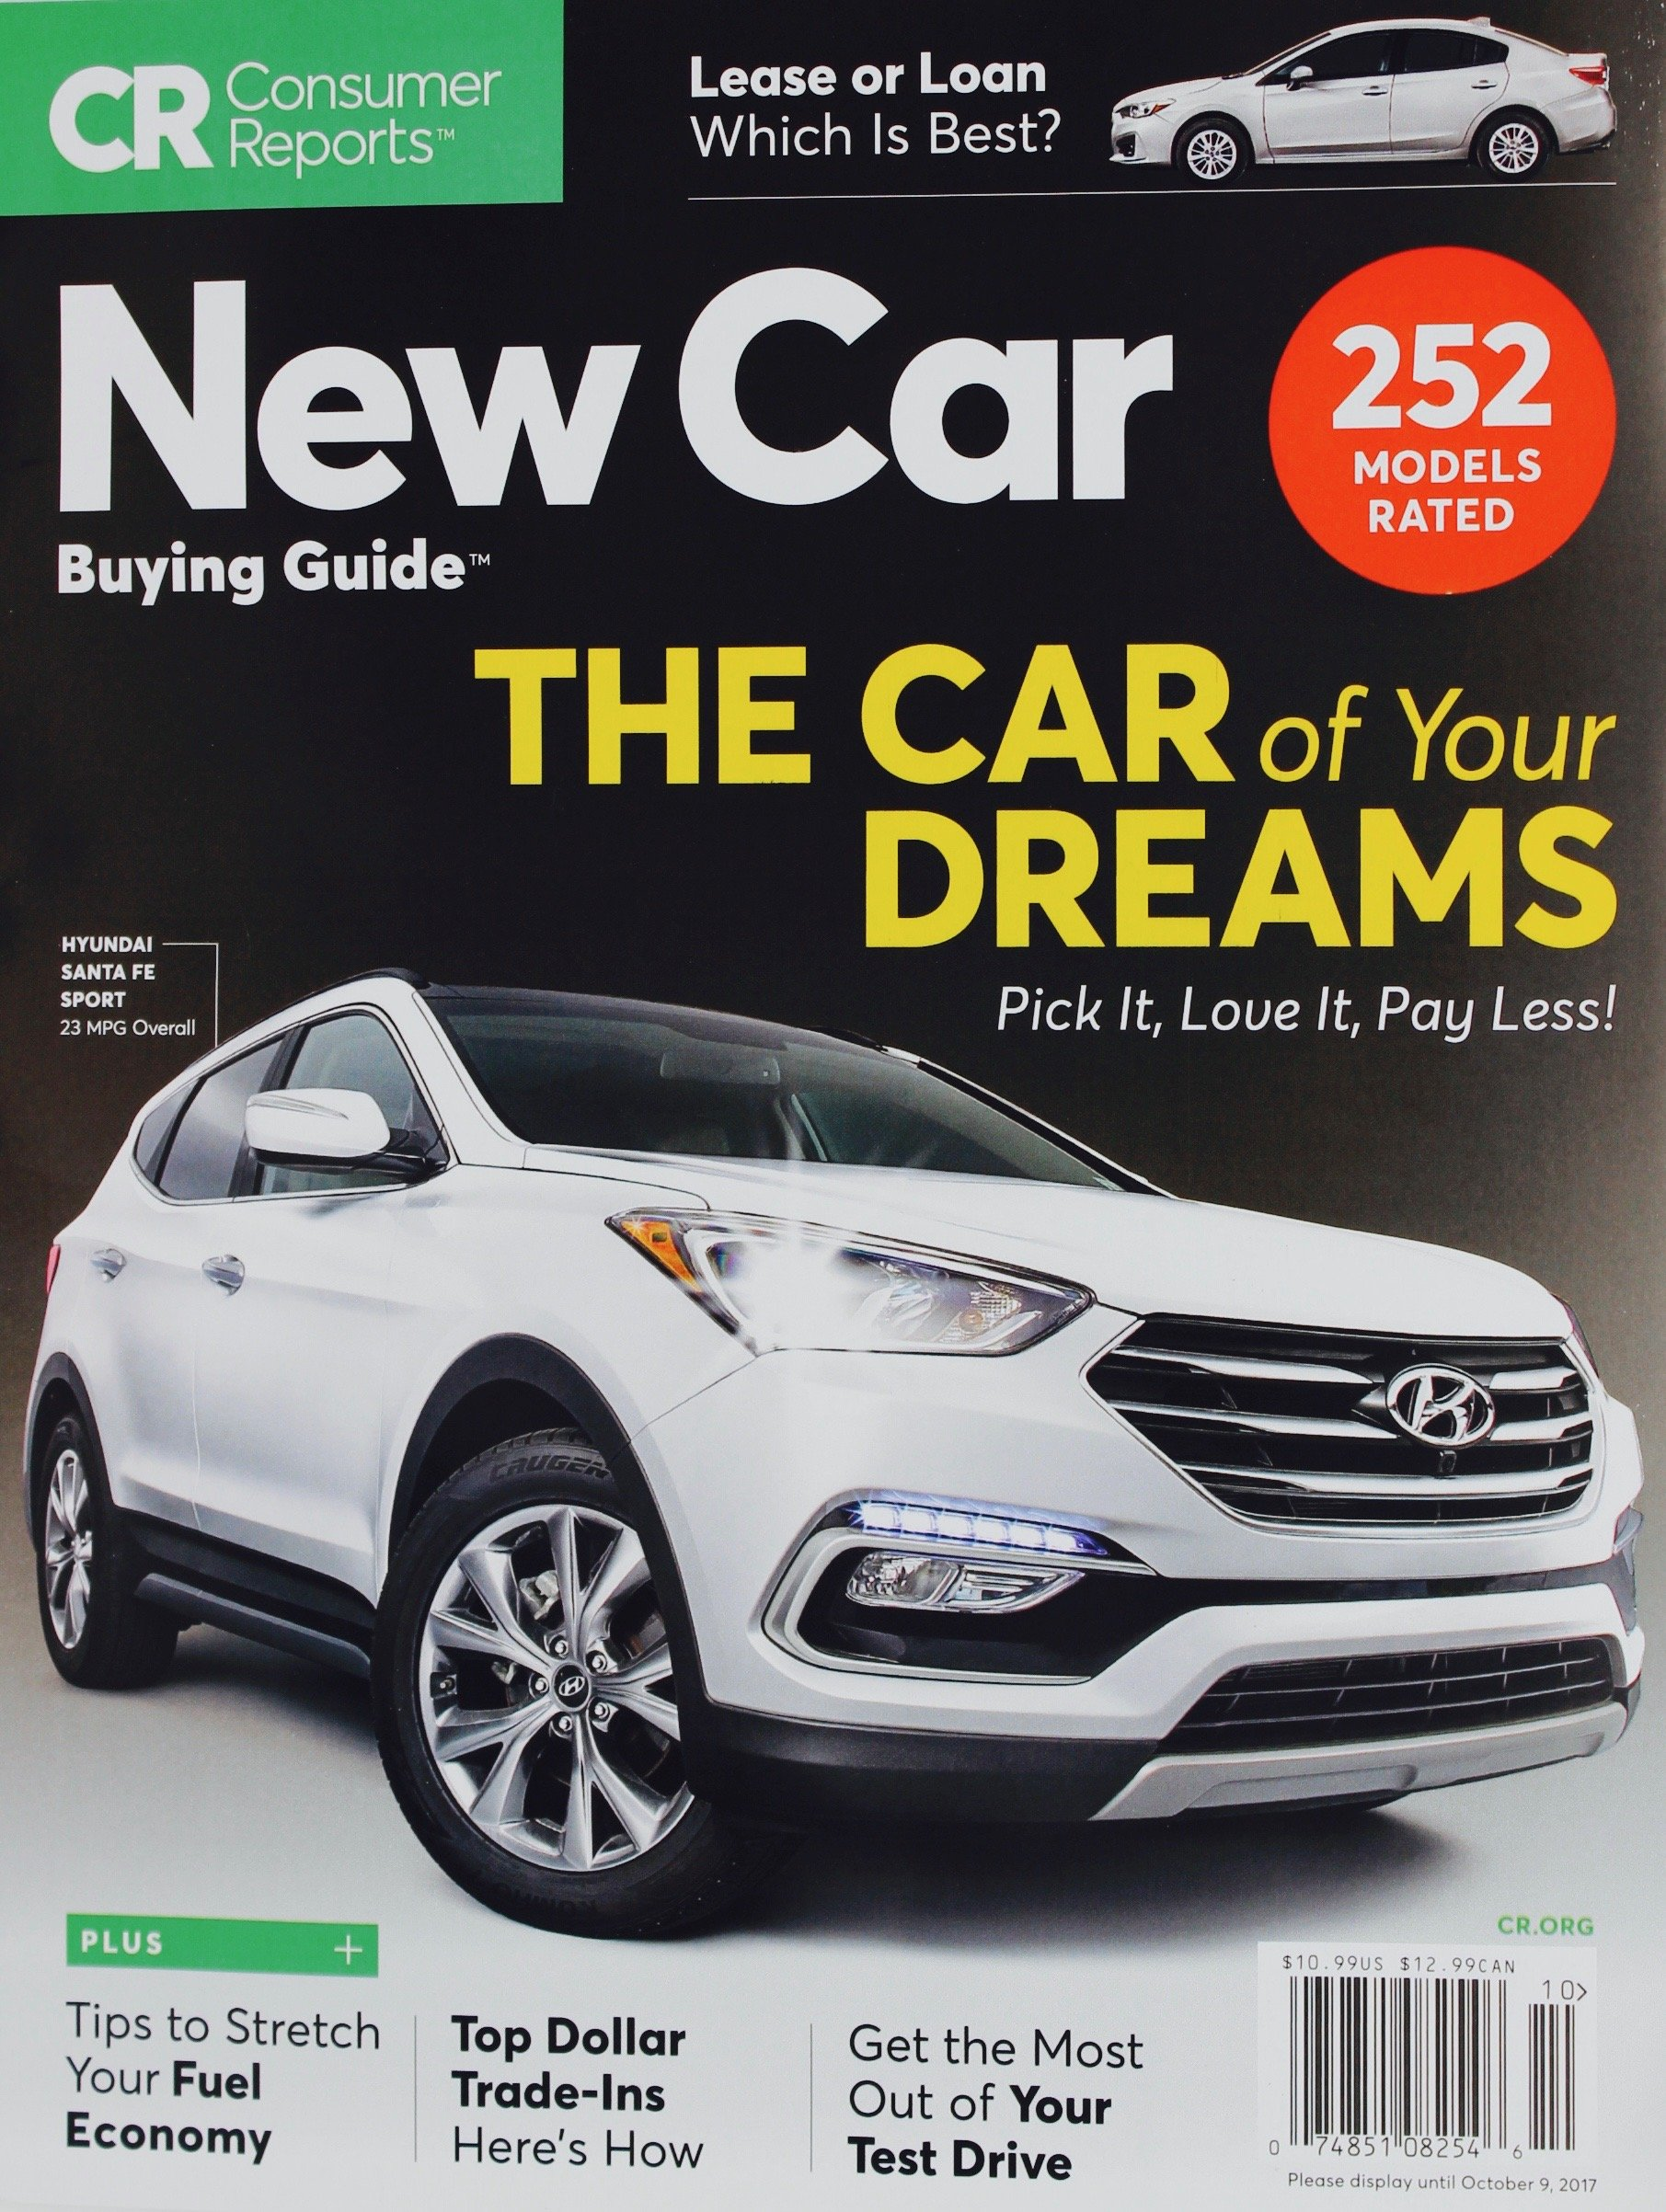 consumer reports buying guide october 2017 252 models rated consumer reports buying guide october 2017 252 models rated consumer reports 0748510825460 amazon com books